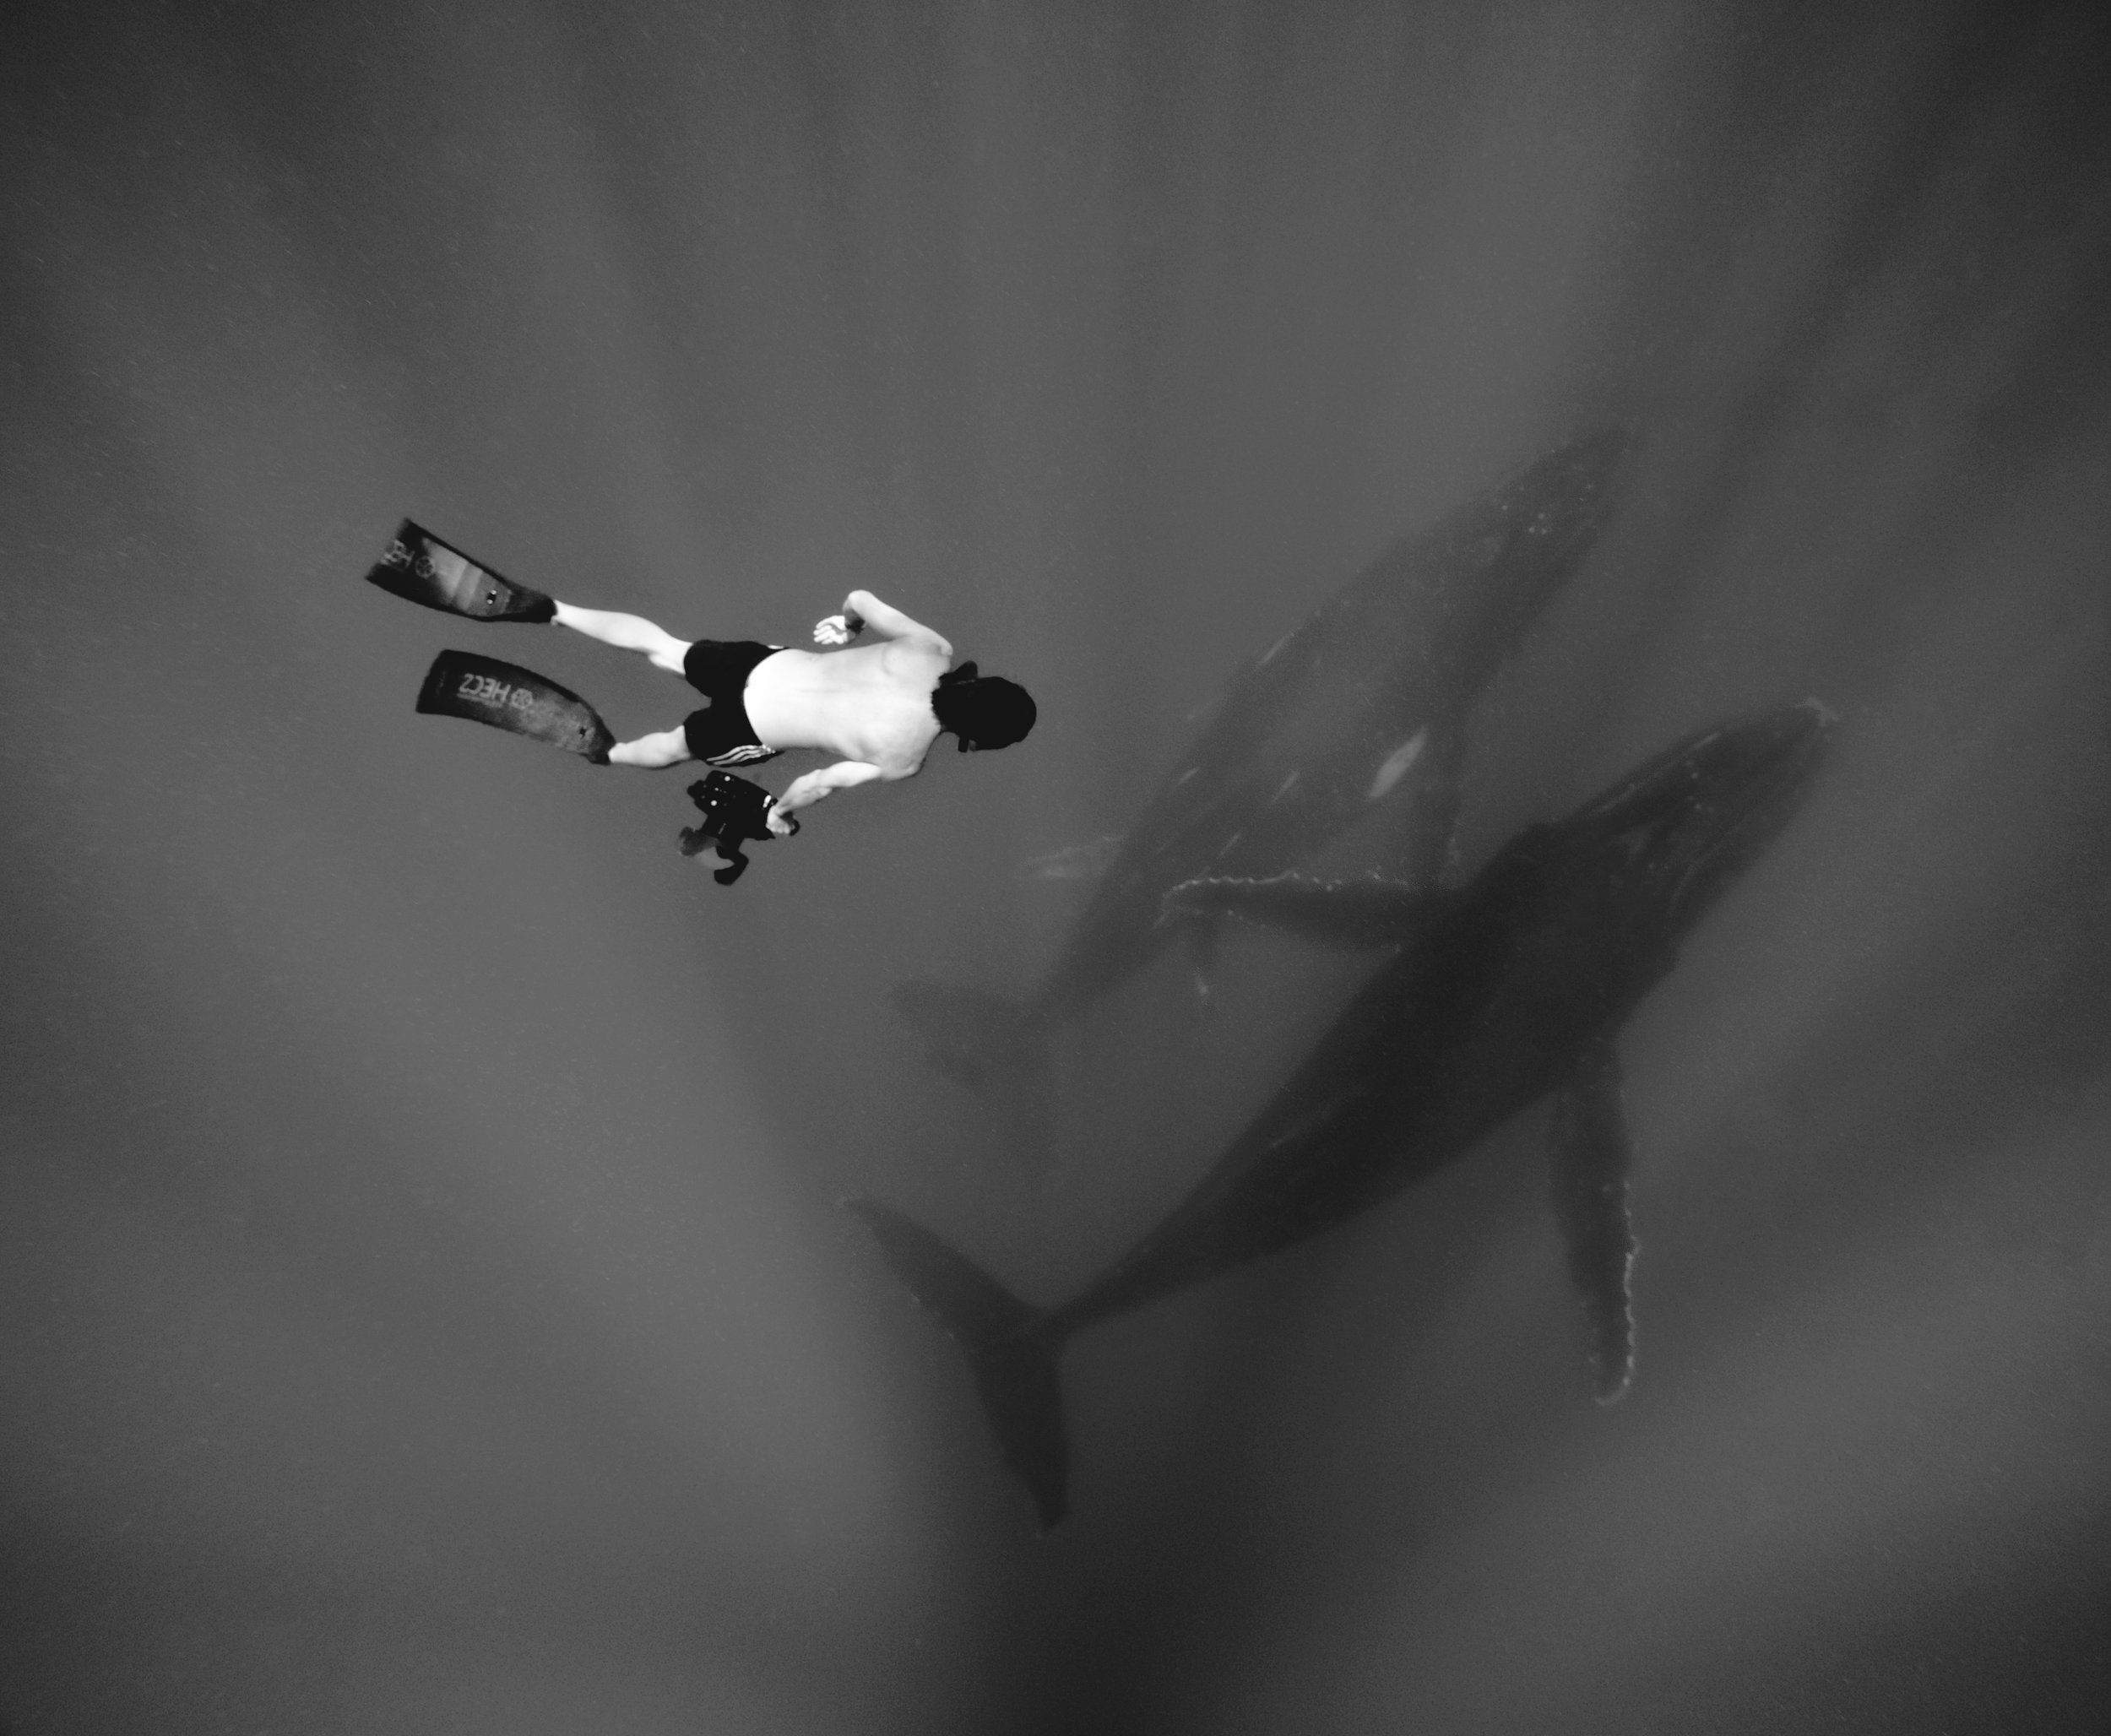 """""""DEEP SWIMMERS"""" - WINNER OF HIGHLY COMMENDED IN THE 2018 OTAGO WILDLIFE PHOTOGRAPHY COMPETITION, ANIMAL CATEGORY"""